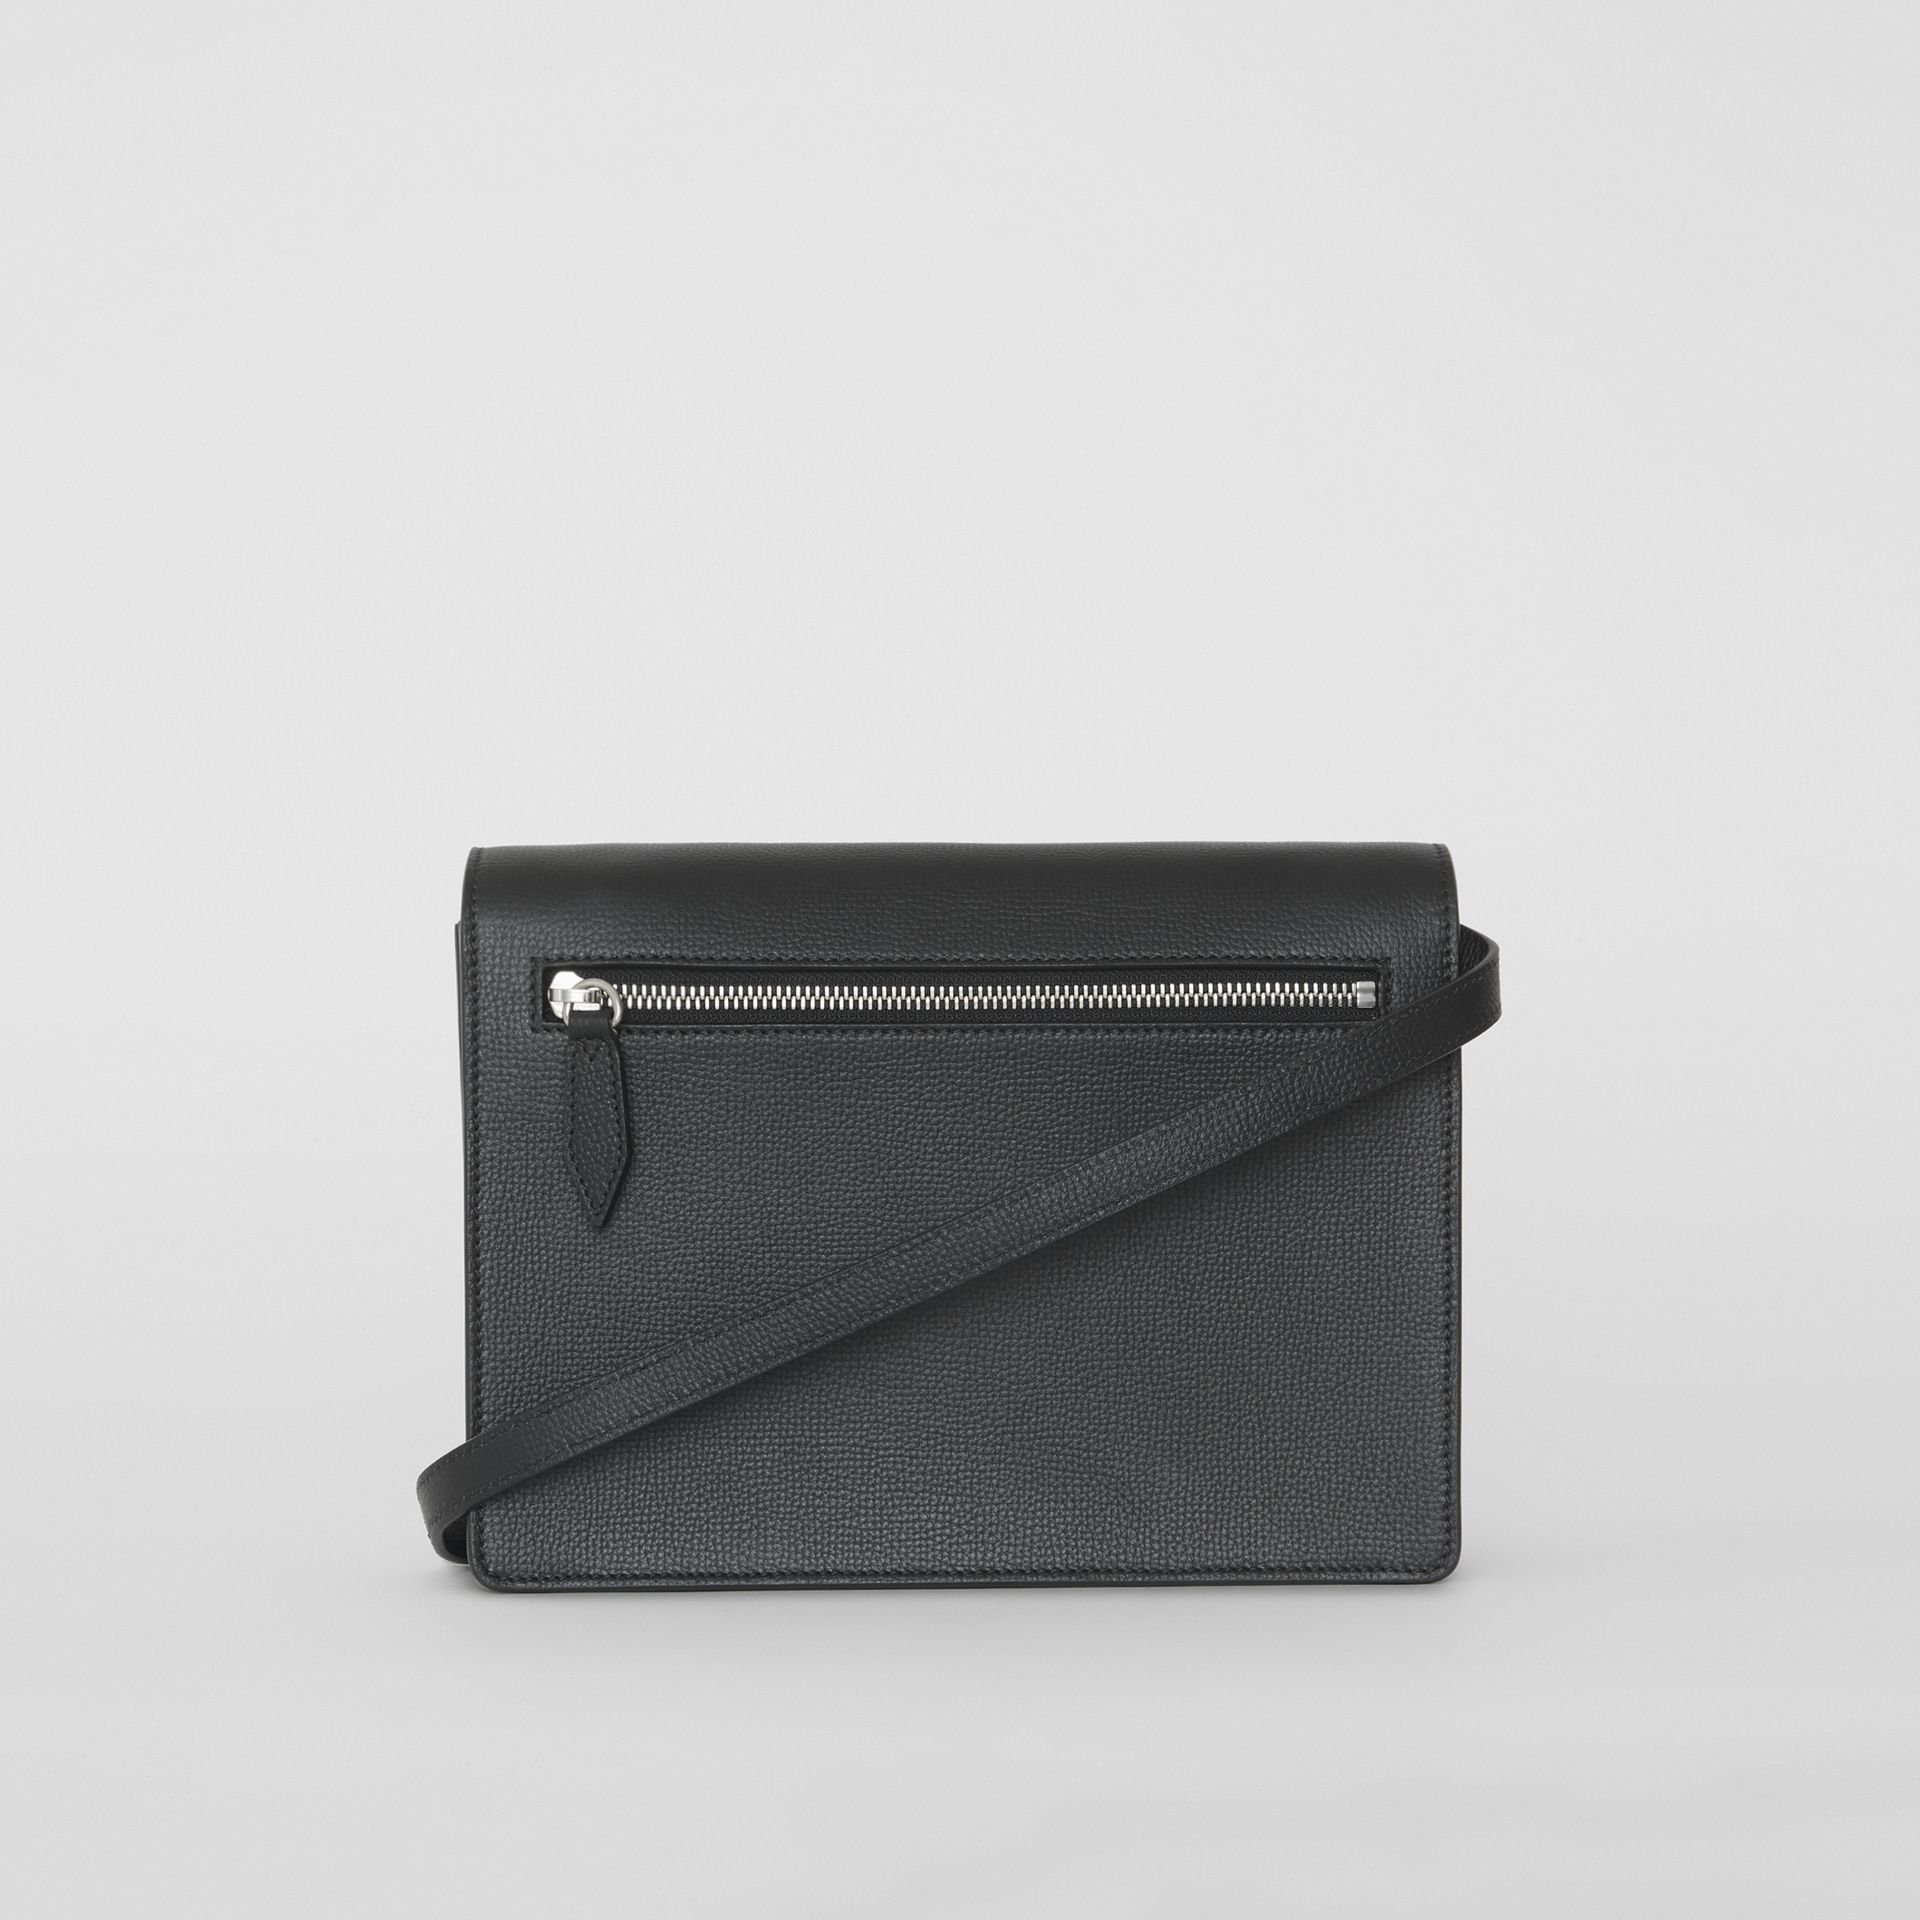 Small Vintage Check and Leather Crossbody Bag in Black - Women | Burberry Singapore - gallery image 5